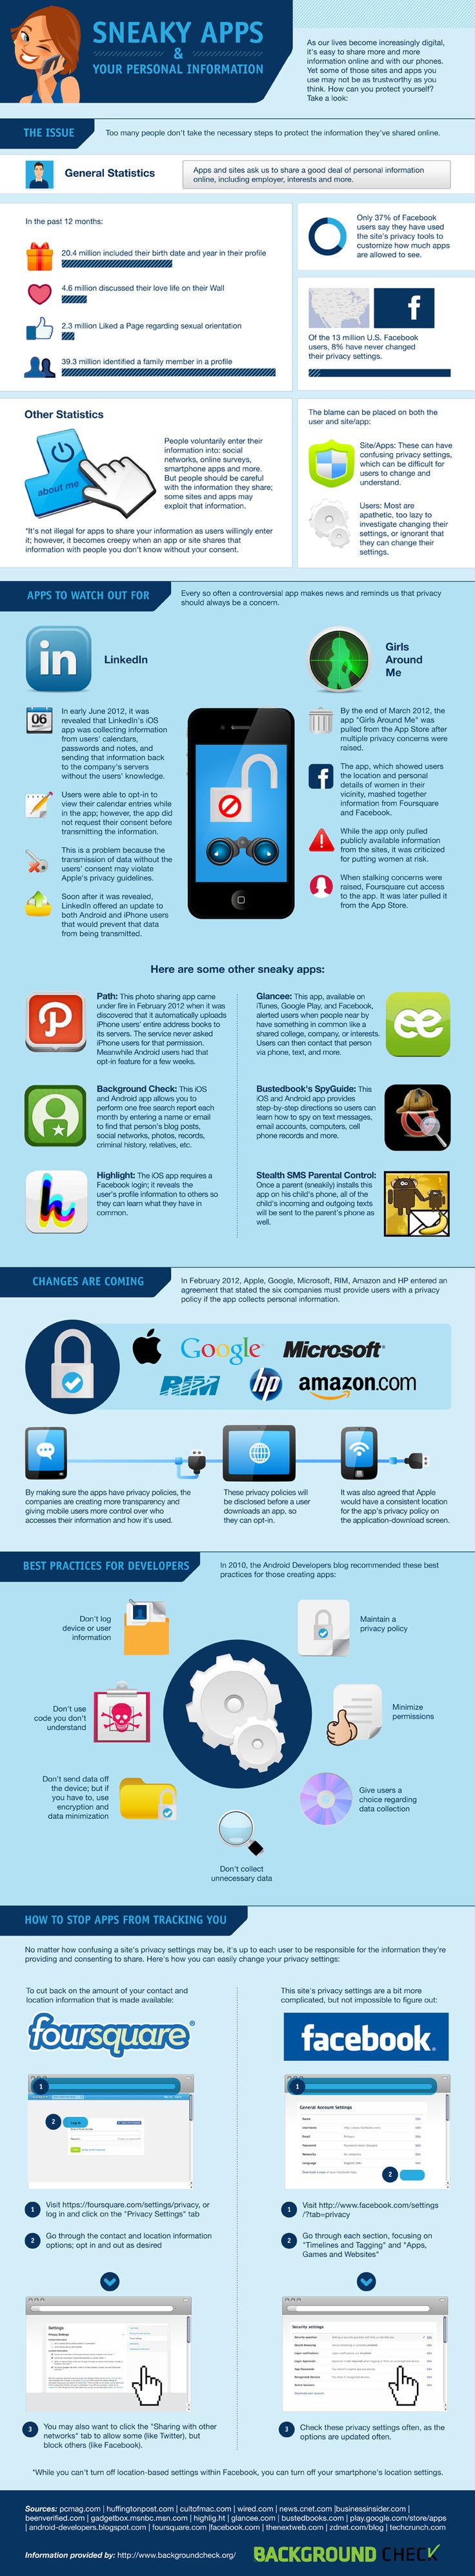 Sneaky apps that are stealing your personal info and how to fight back.